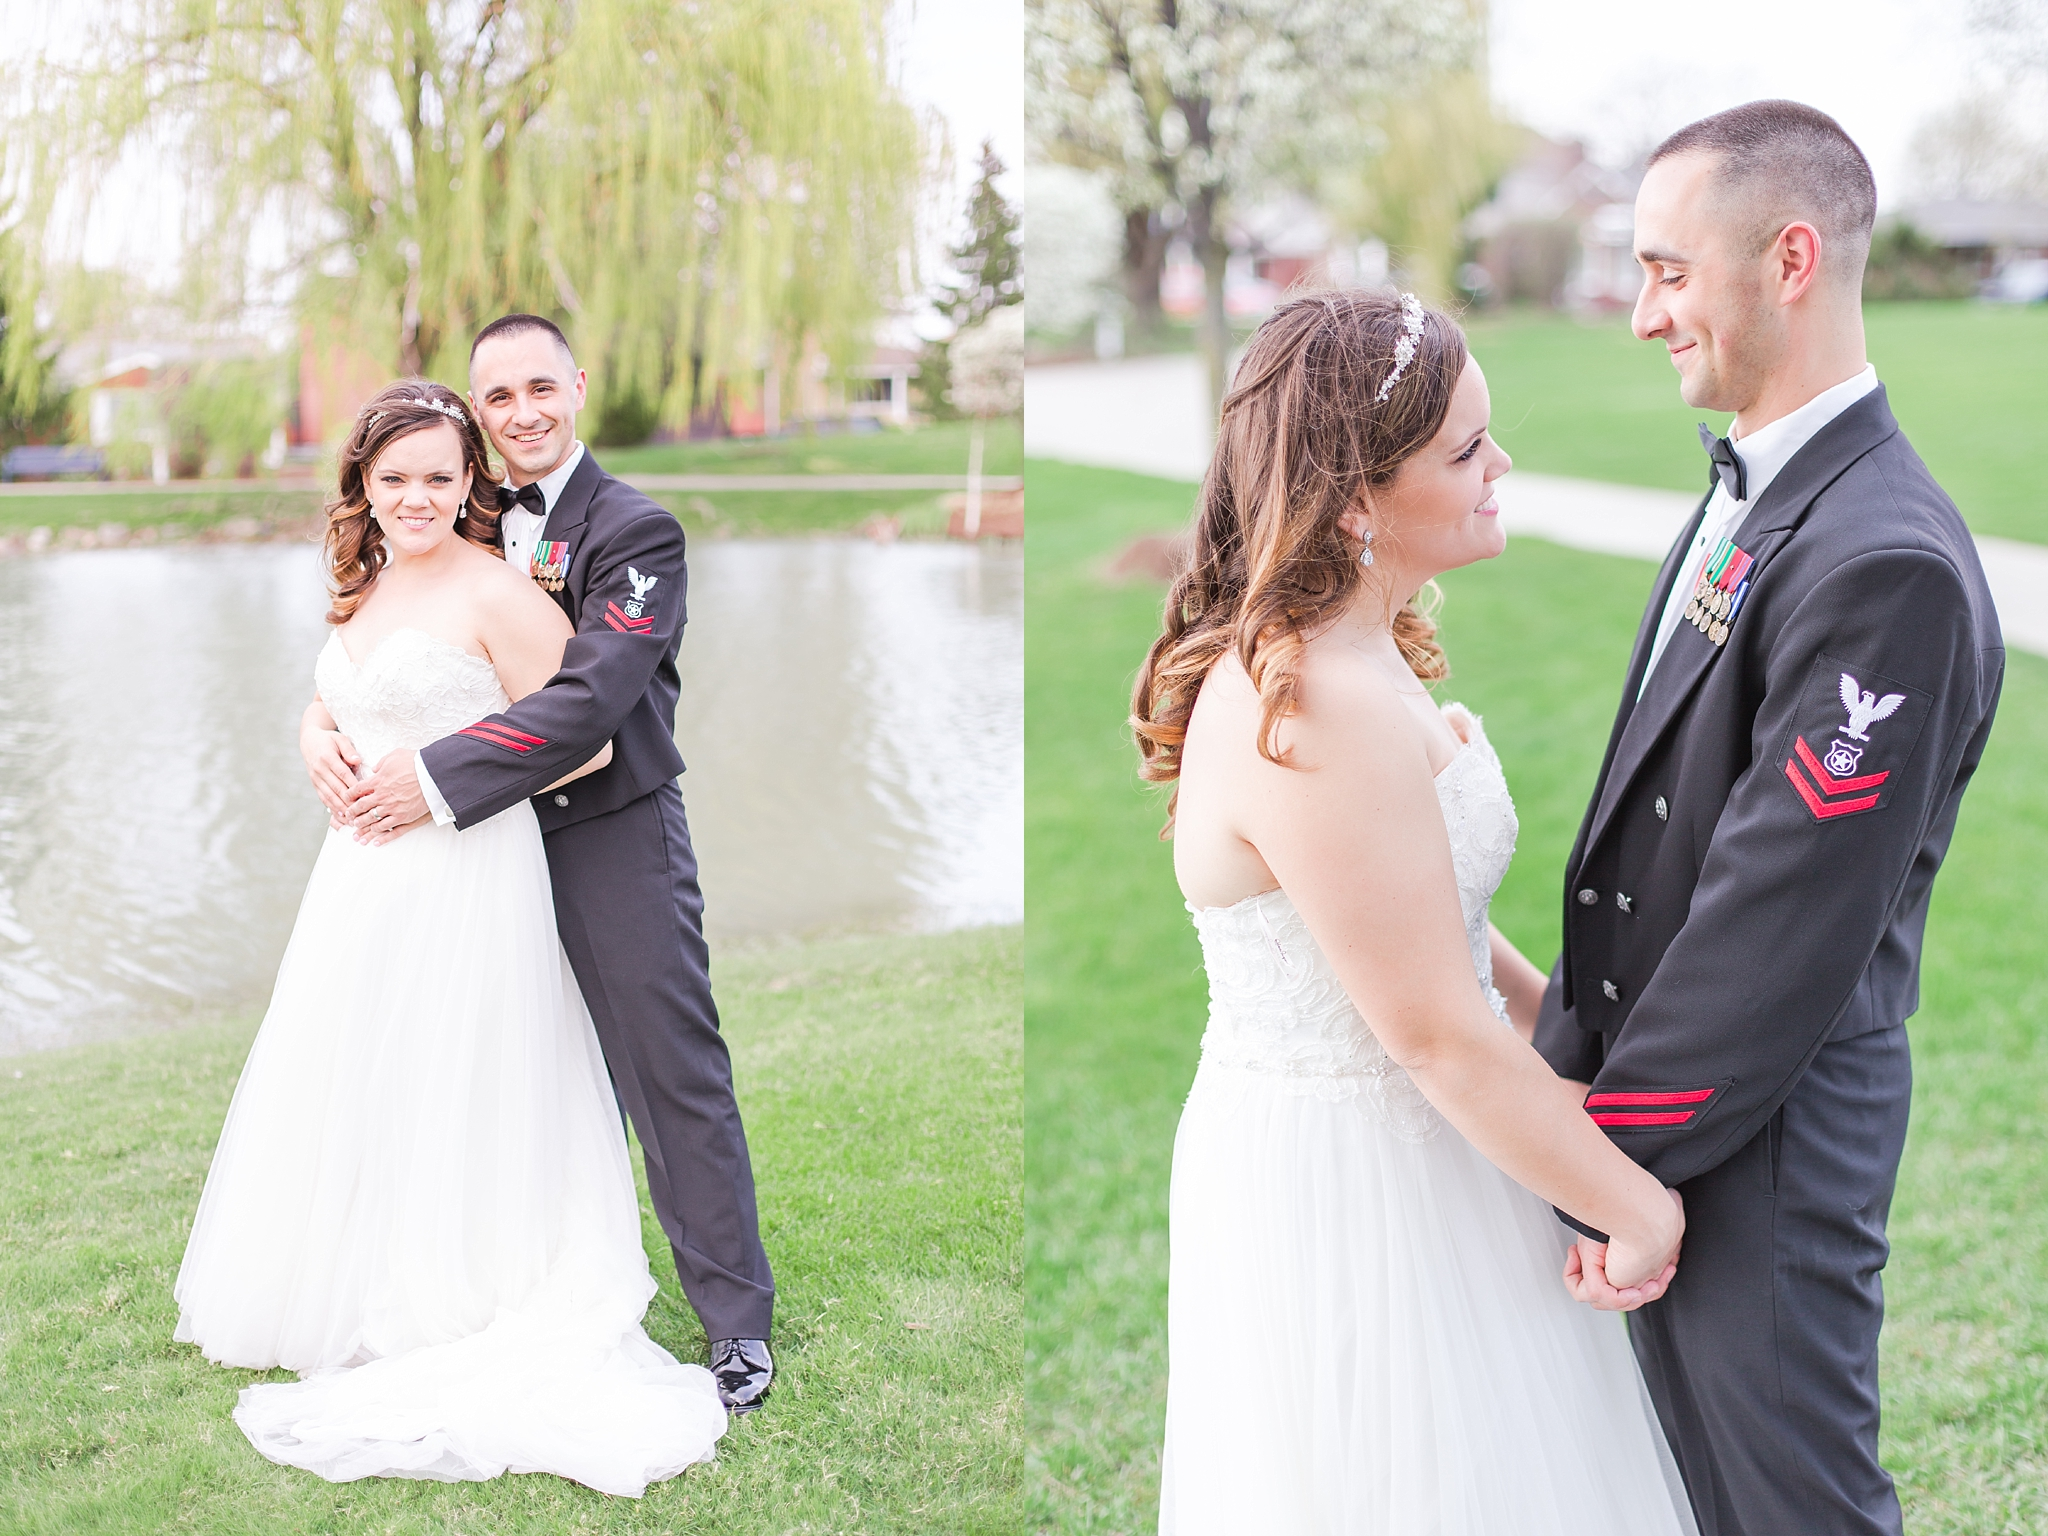 romantic-artful-candid-wedding-photos-in-st-clair-shores-at-the-white-house-wedding-chapel-by-courtney-carolyn-photography_0054.jpg